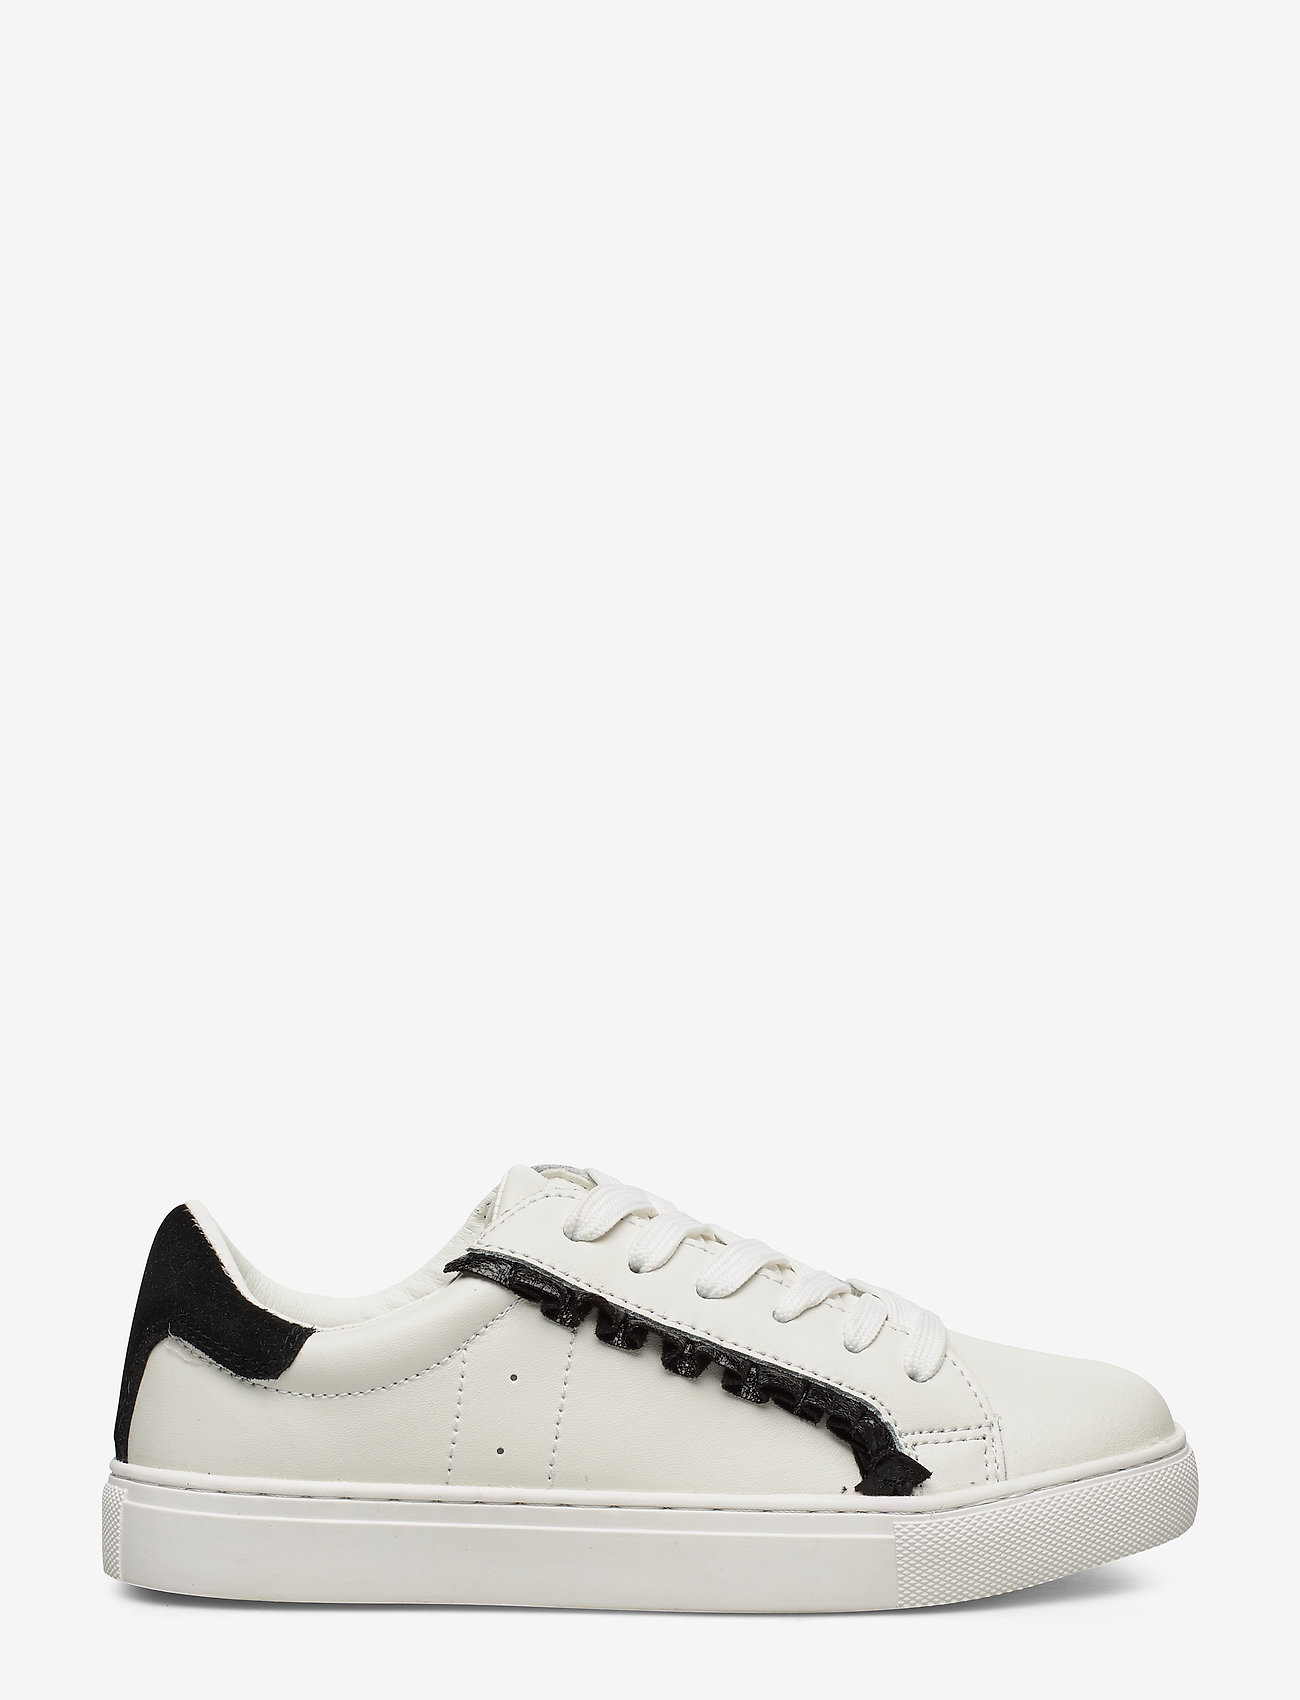 Sofie Schnoor - Shoe - lave sneakers - white black - 1